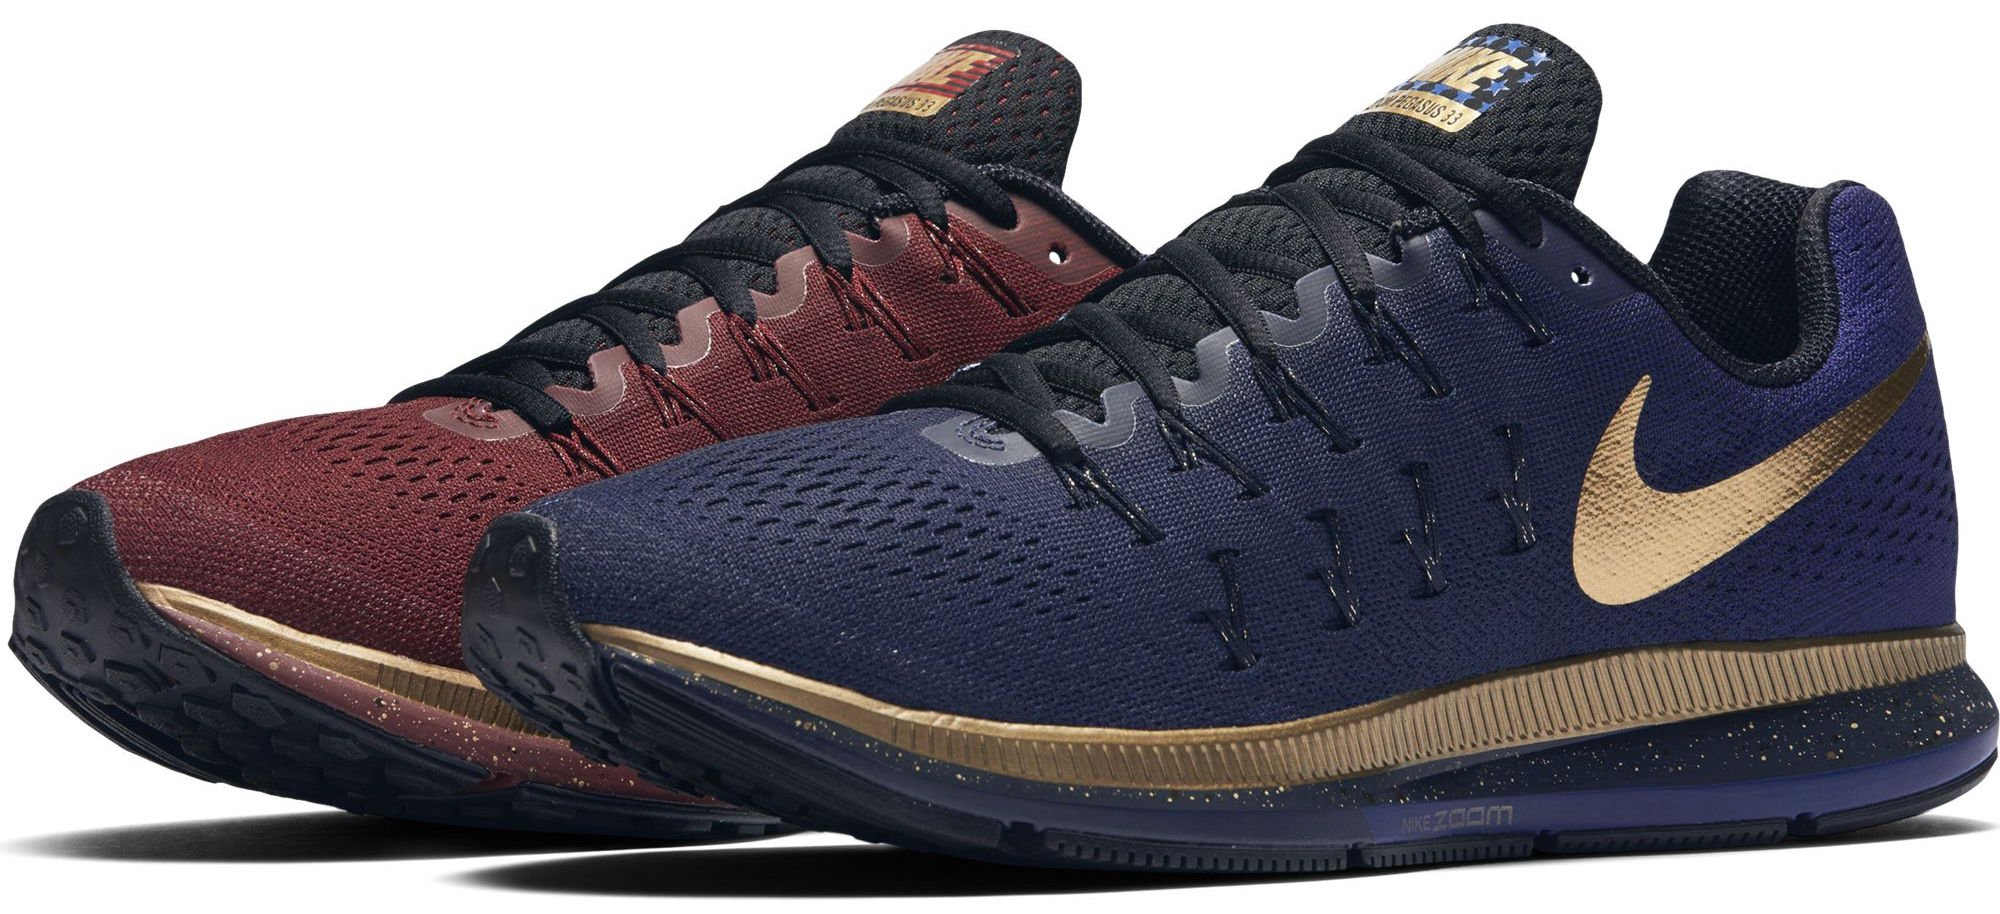 check out 07215 f6a4b Кроссовки Nike Air Zoom Pegasus 33 LE MJ